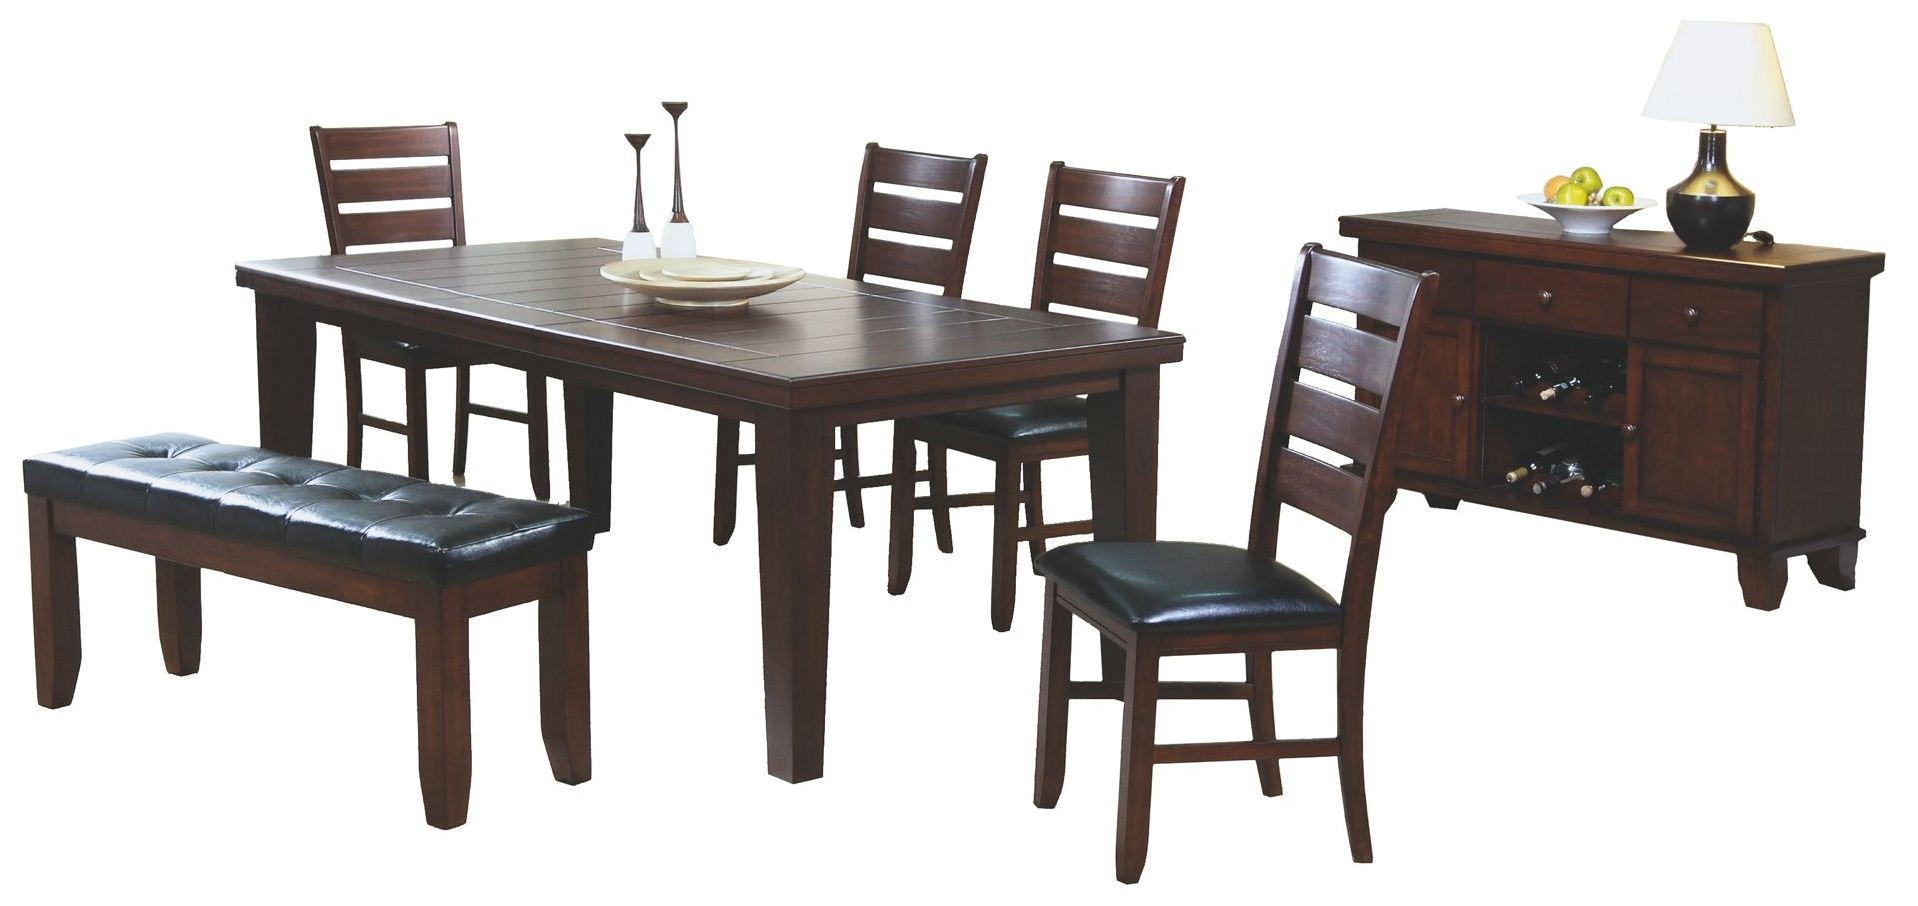 Dark Oak Dining Table From Monarch 1830 Coleman Furniture